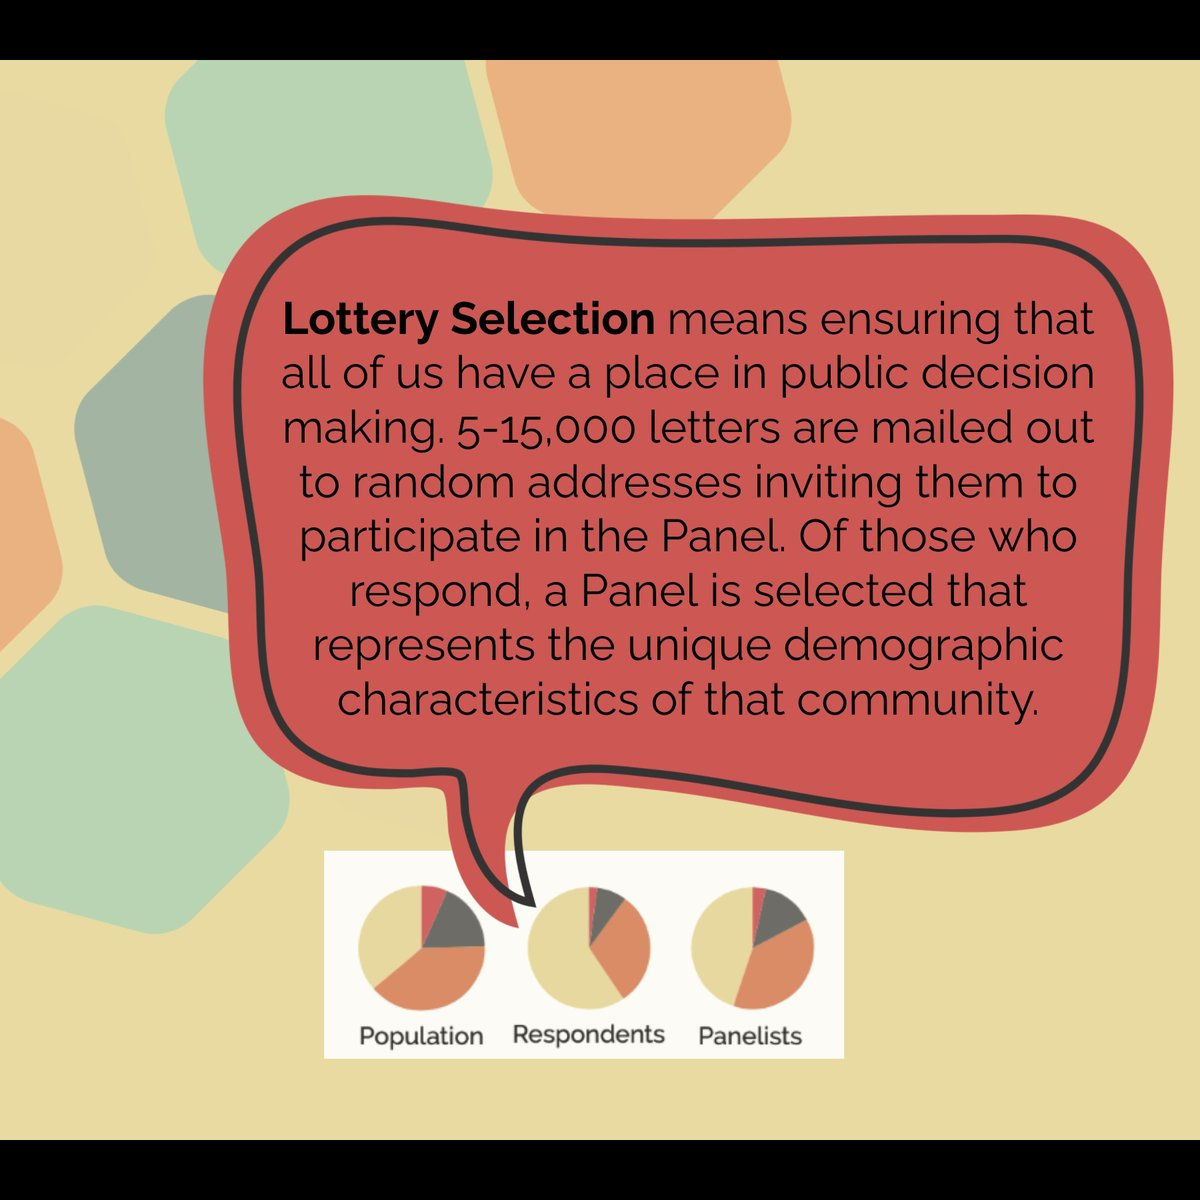 test Twitter Media - Ever wondered how we select Panelists for our Panels? Today's addition to the concept #Glossary is #LotterySelection. How could it help your community?   Don't forget to play along! What concept would you like defined? Each week, we'll  share a new definition.  #EducationTuesday https://t.co/qrB4wdRugN